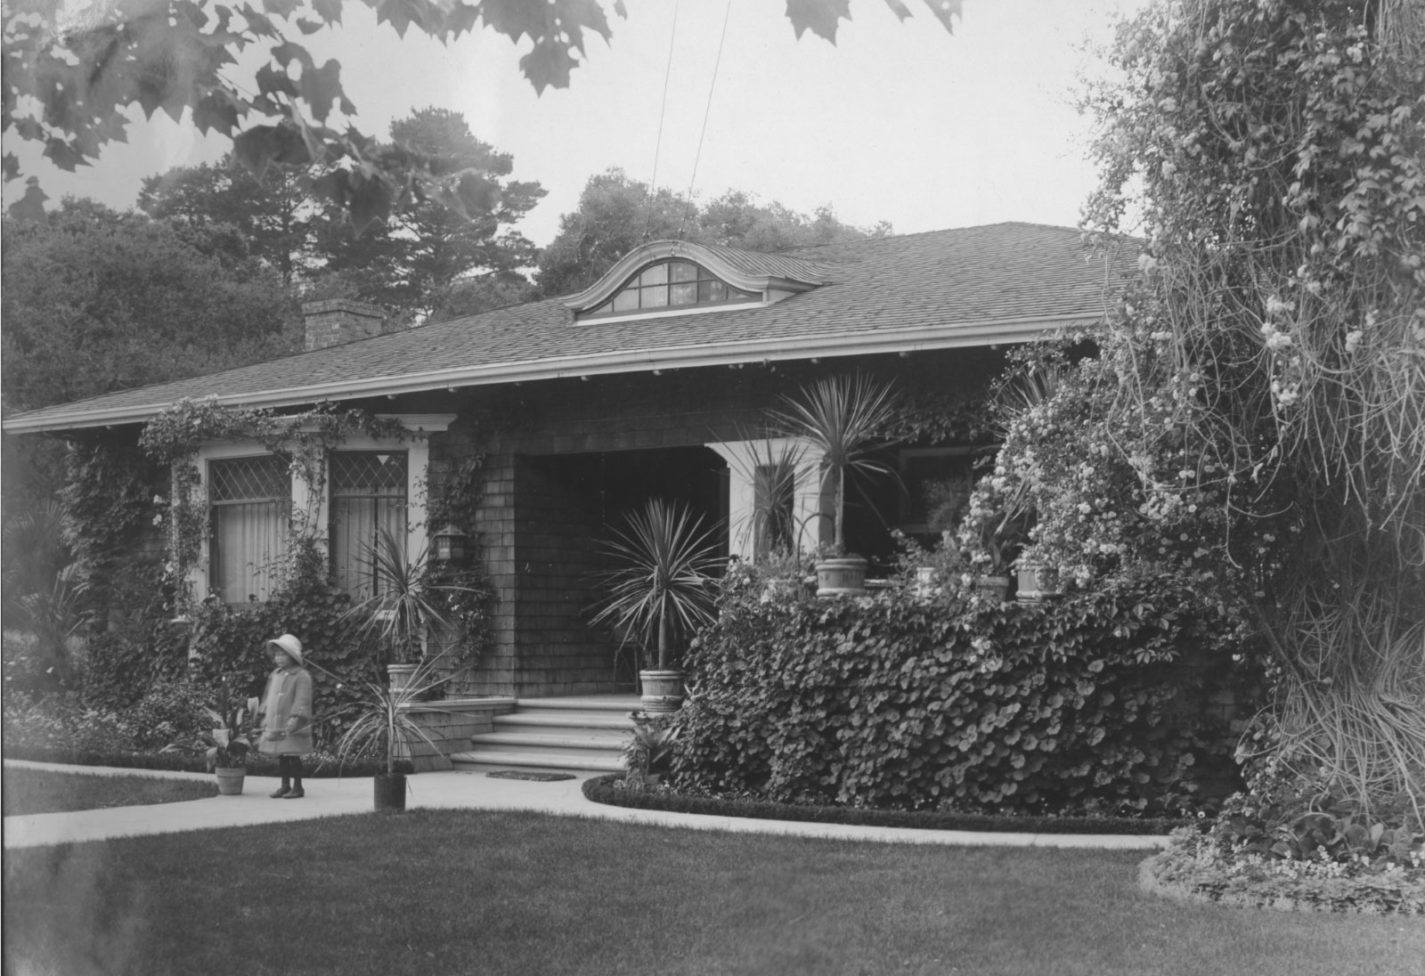 1915 photo of a bungalow on Ninth Avenue in San Mateo